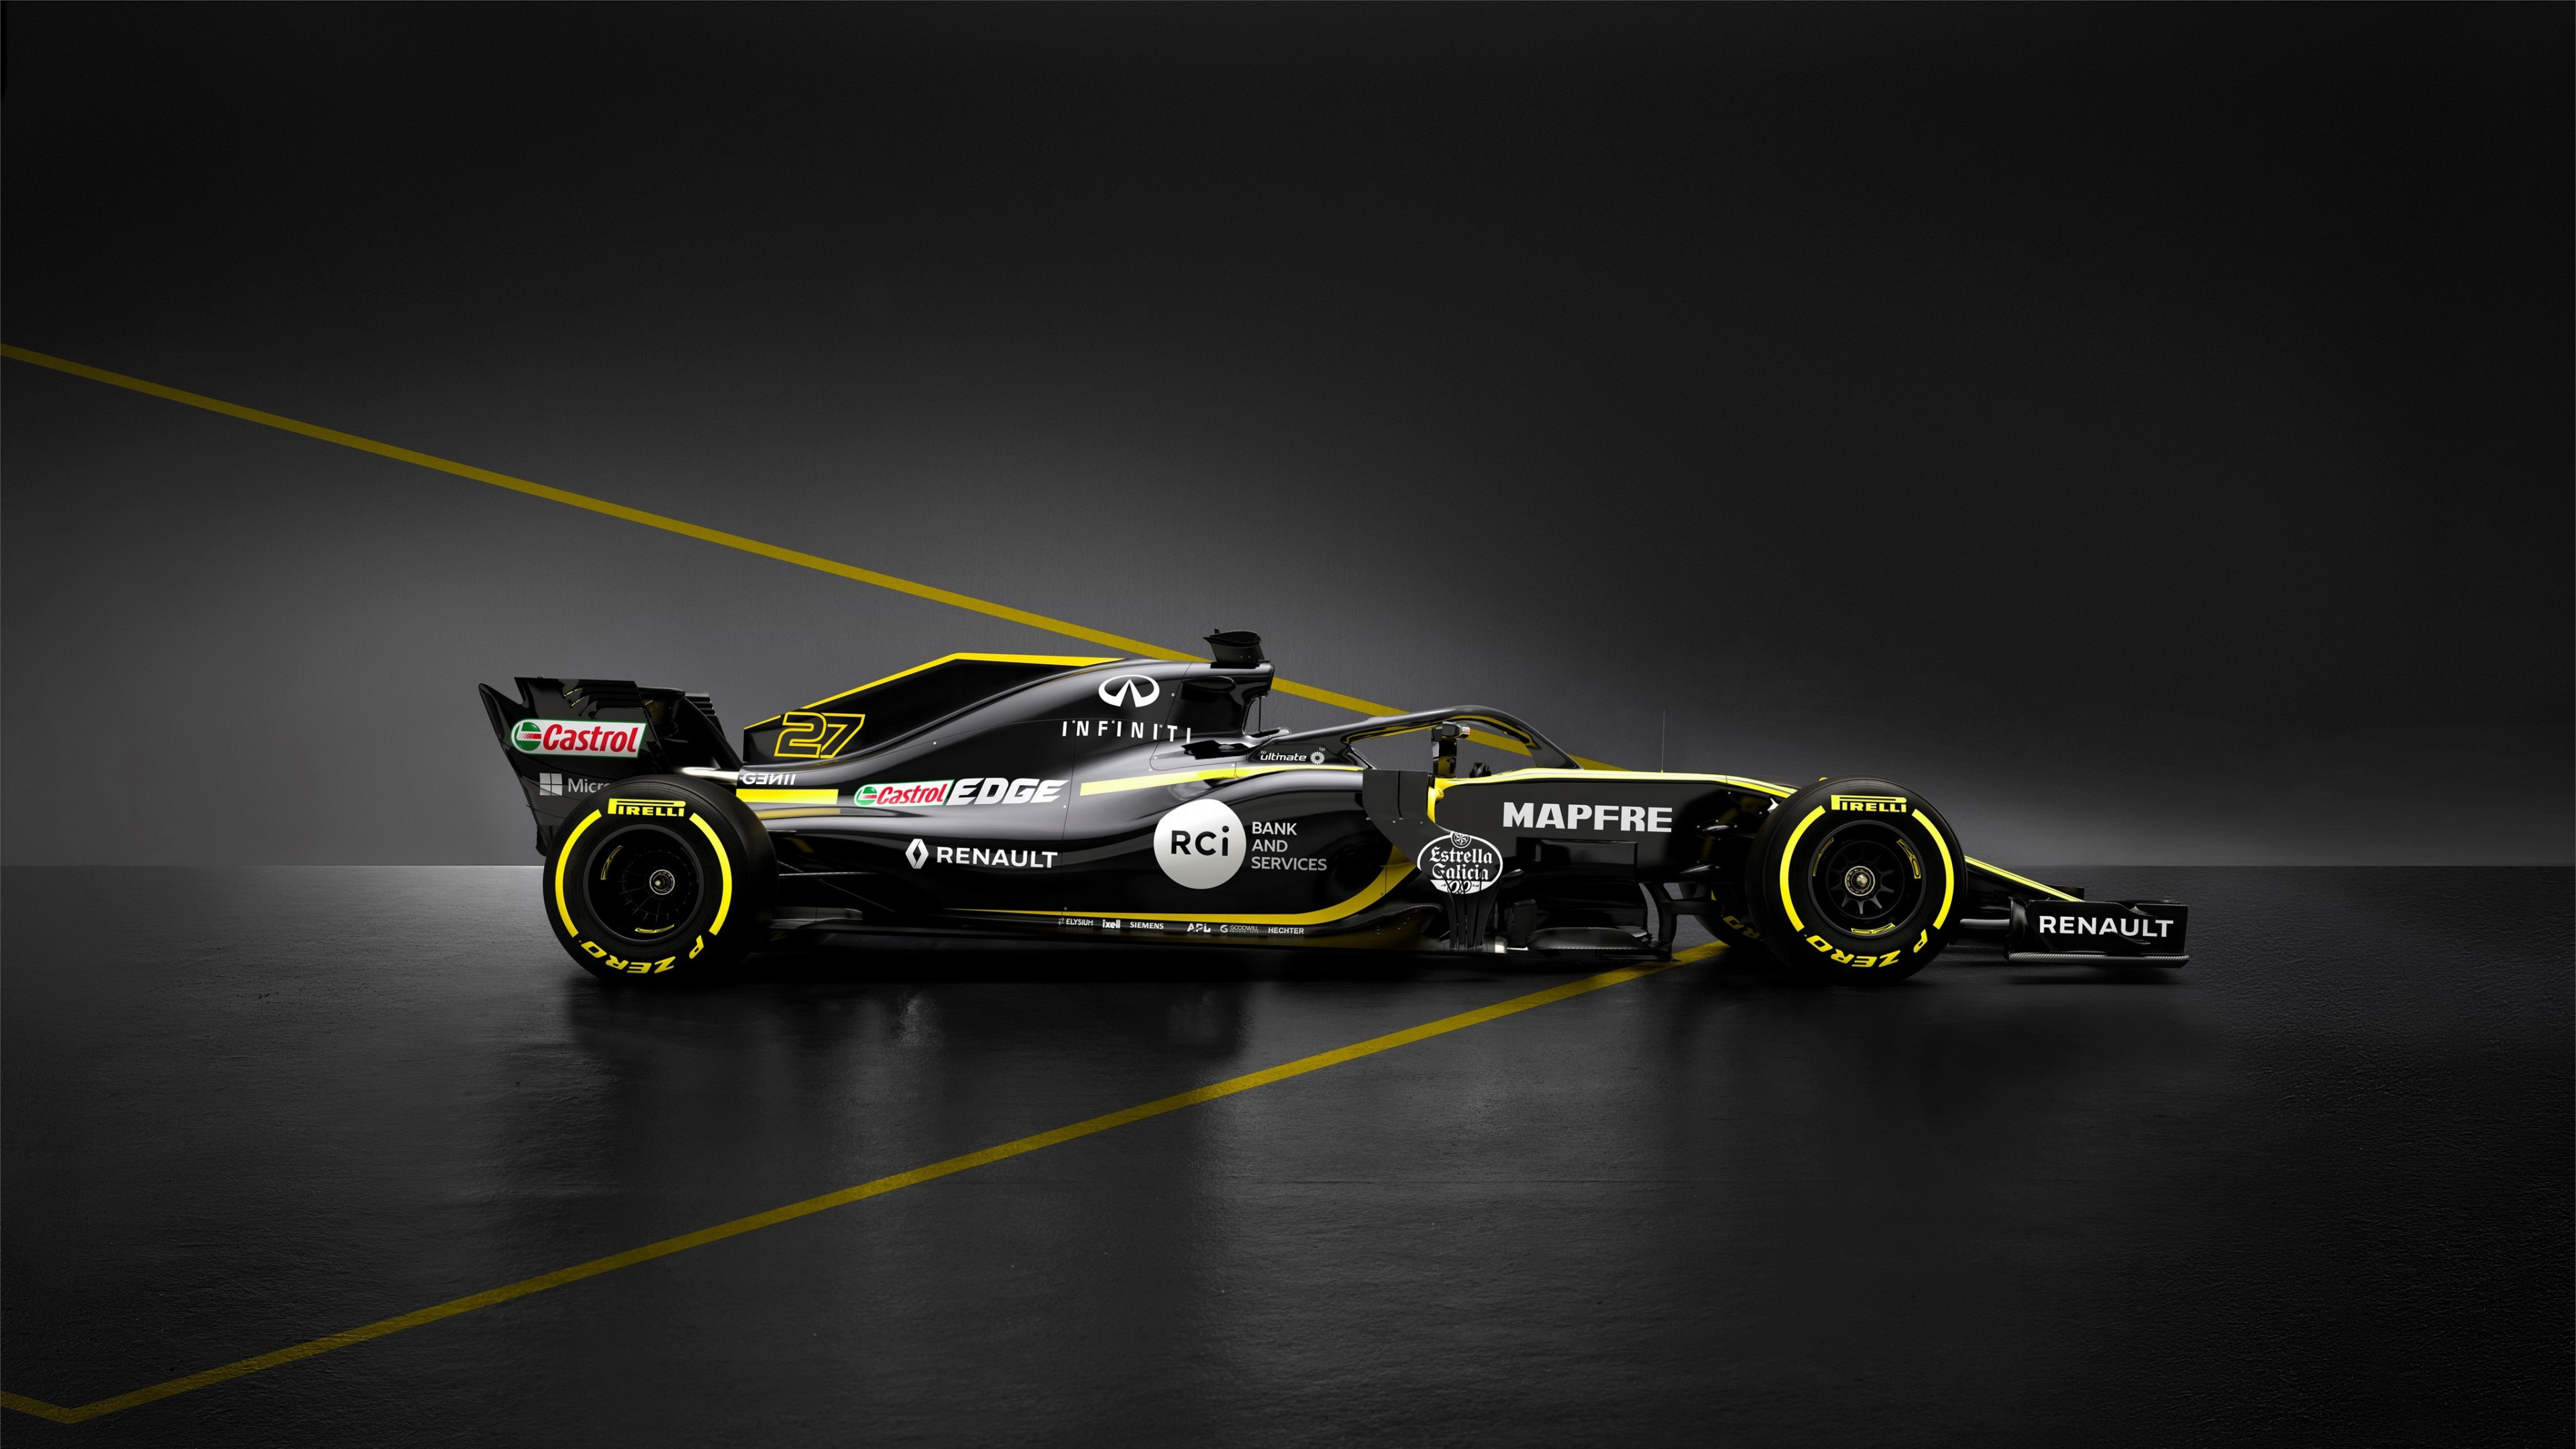 Mclaren mercedes f1 wallpaper